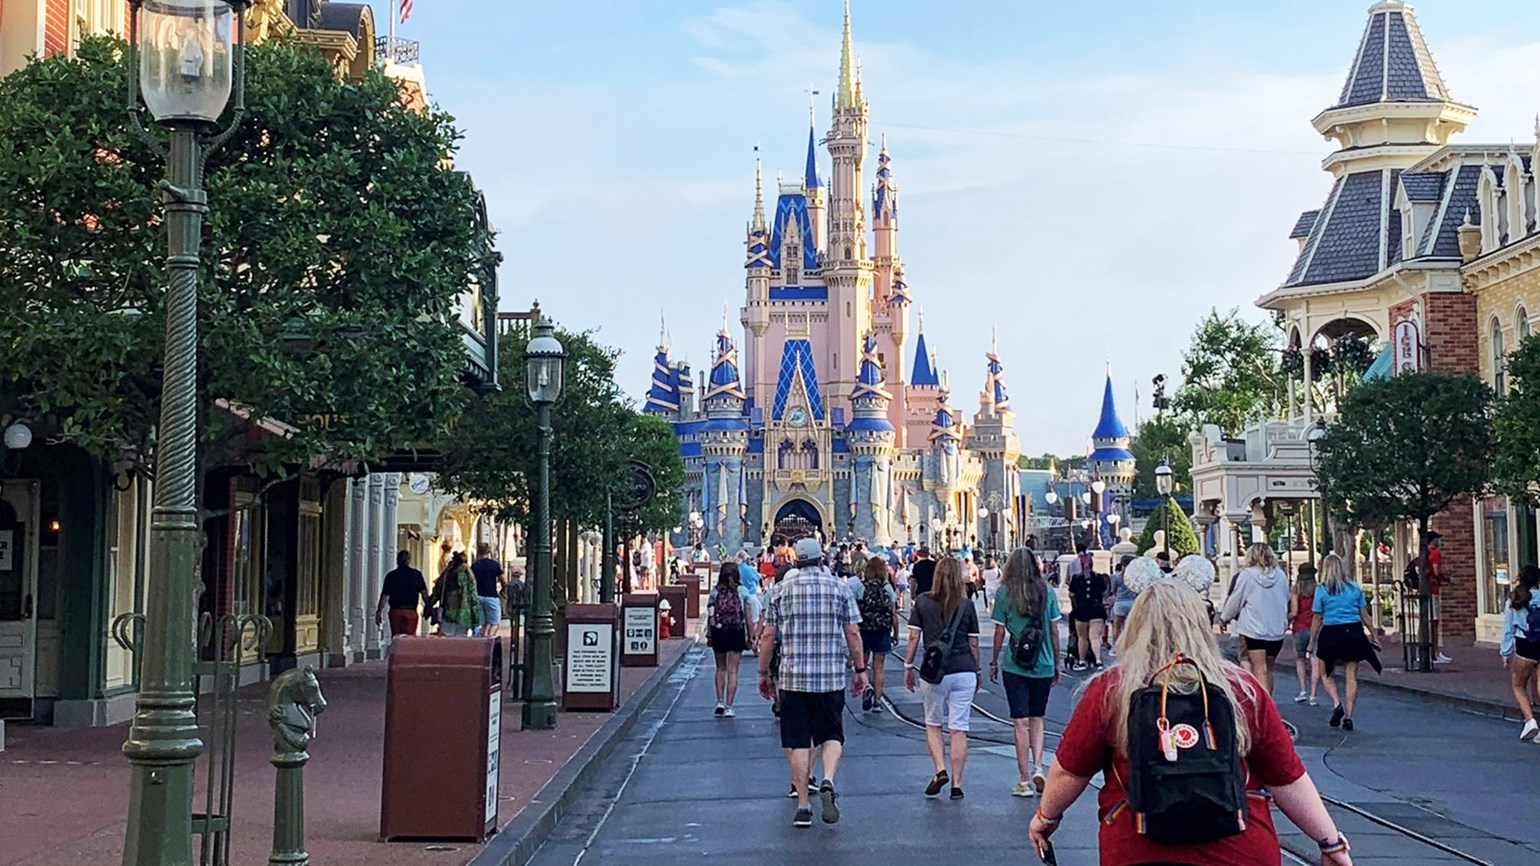 Dispatch, Walt Disney World: Back in the parks